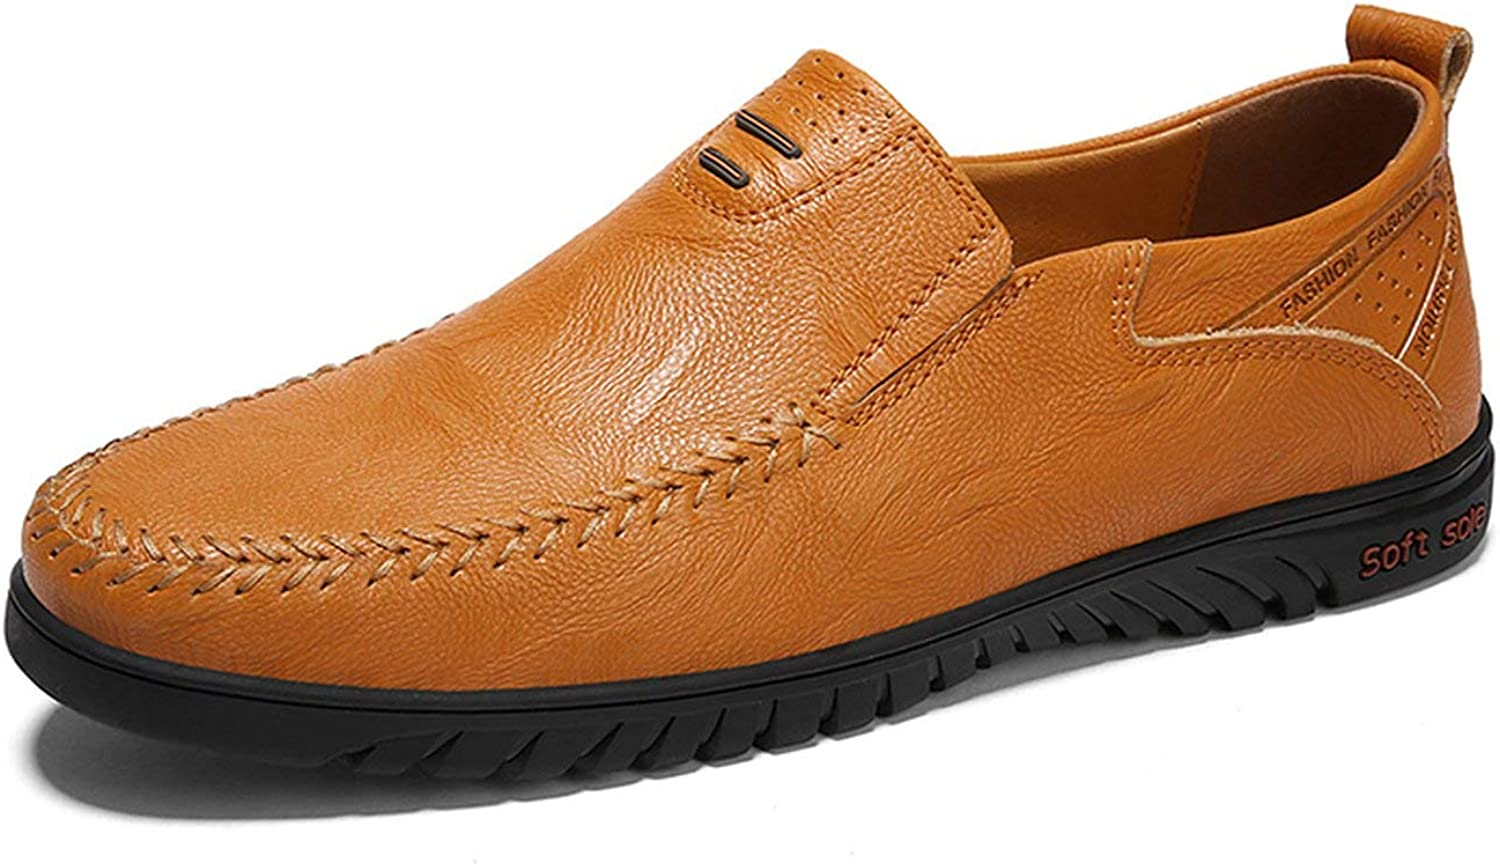 OH WHY Genuine Leather shoes Mens Loafers Moccasins Breathable Slip on Driving shoes Plus Size